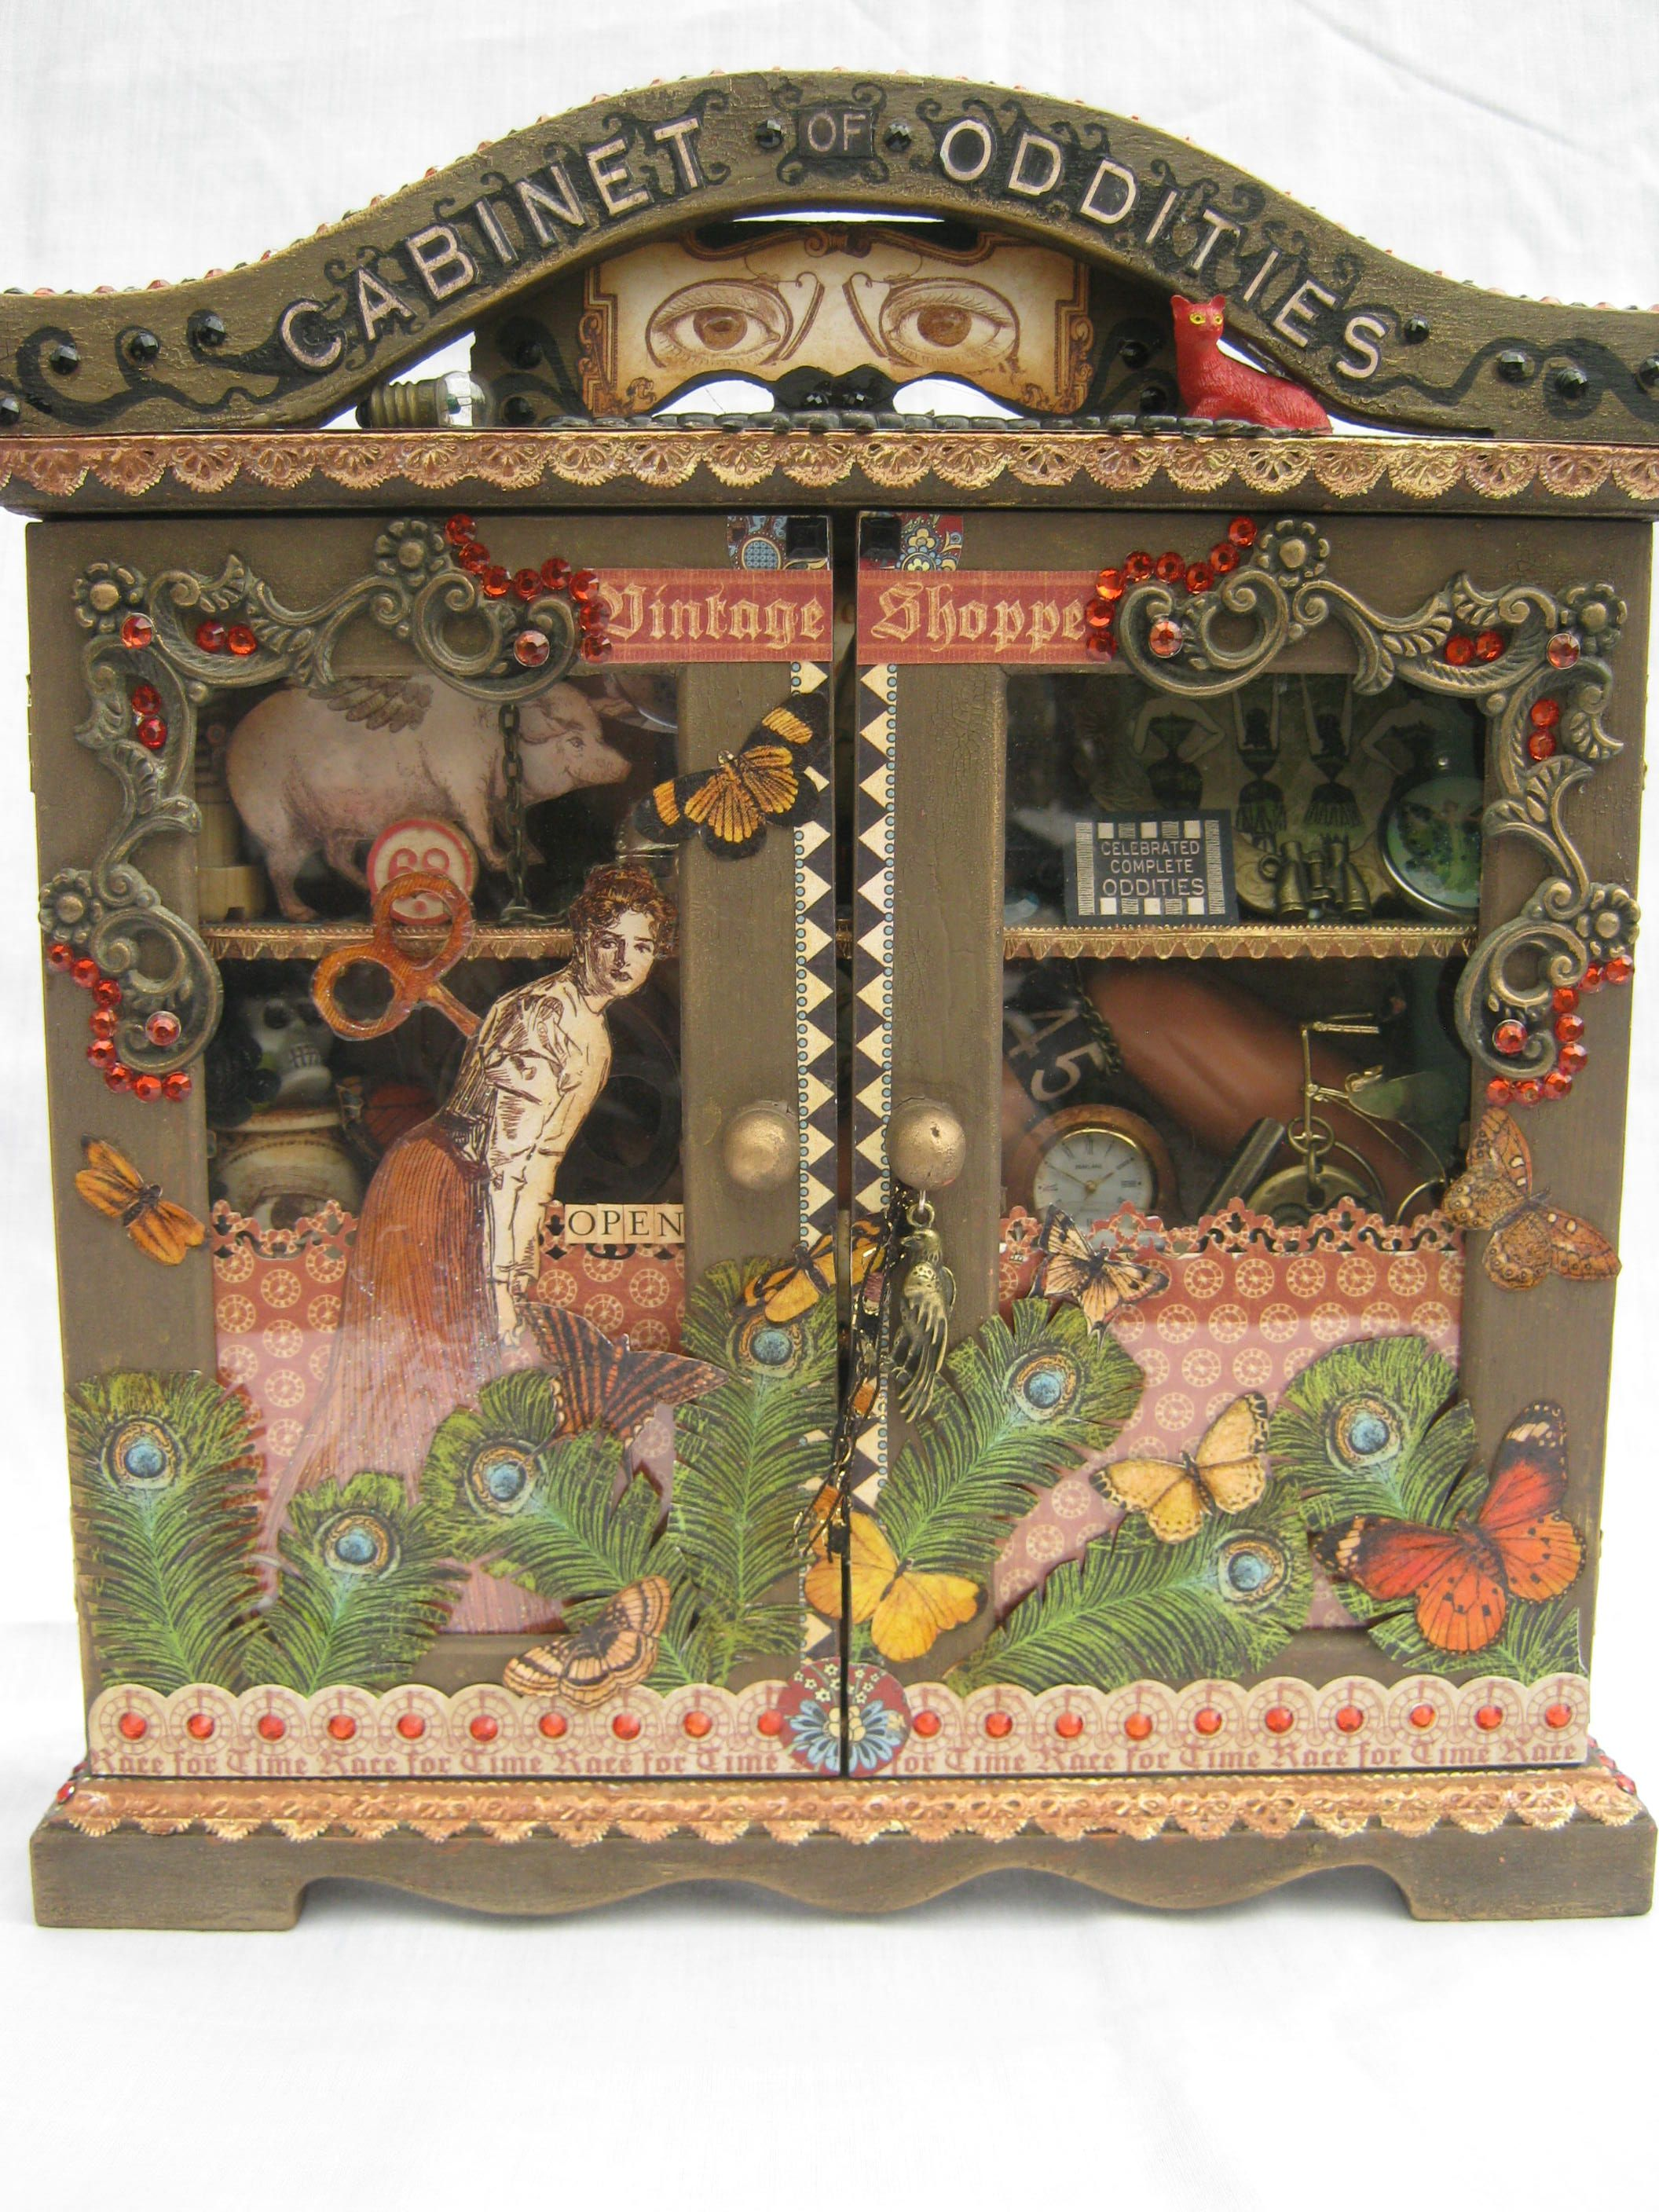 SOLD! A curiosity cabinet! To see my latest items for sale please ...